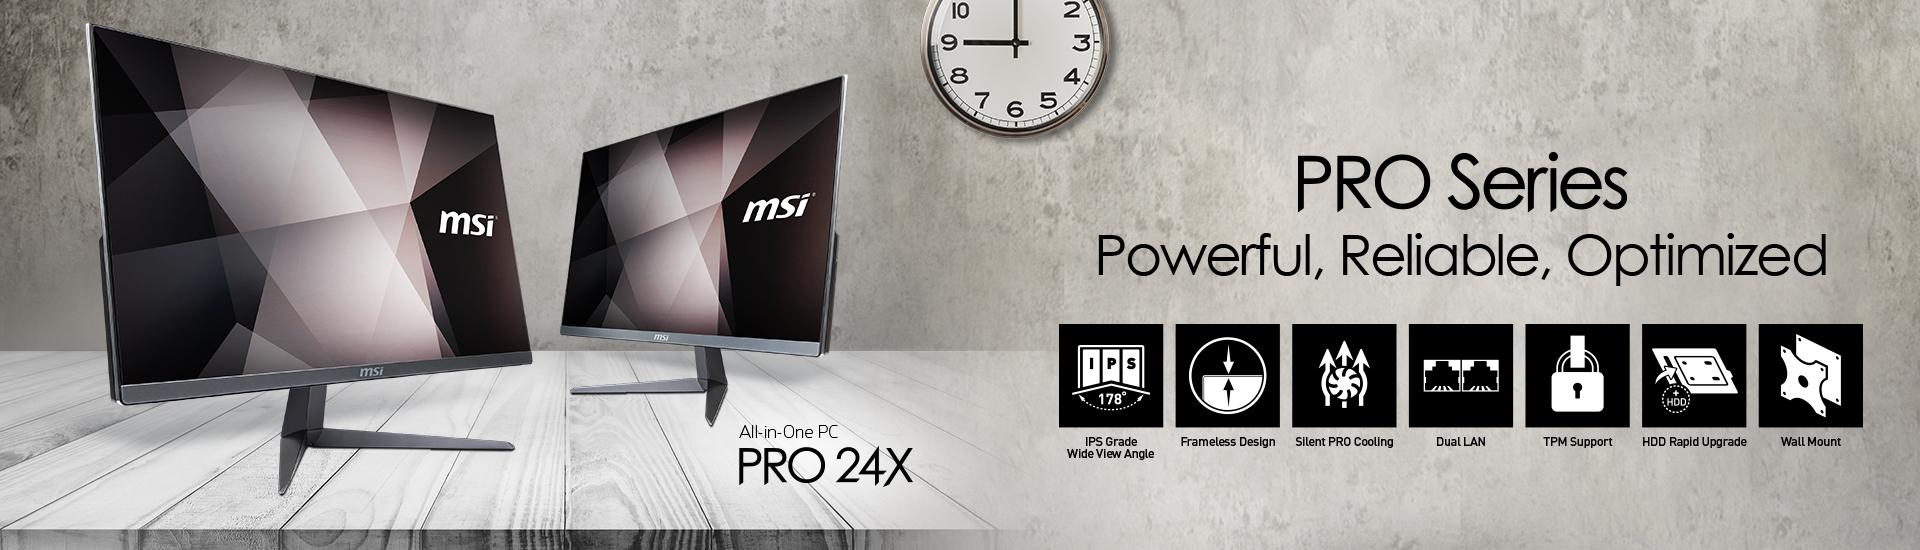 All-in-one PRO24X